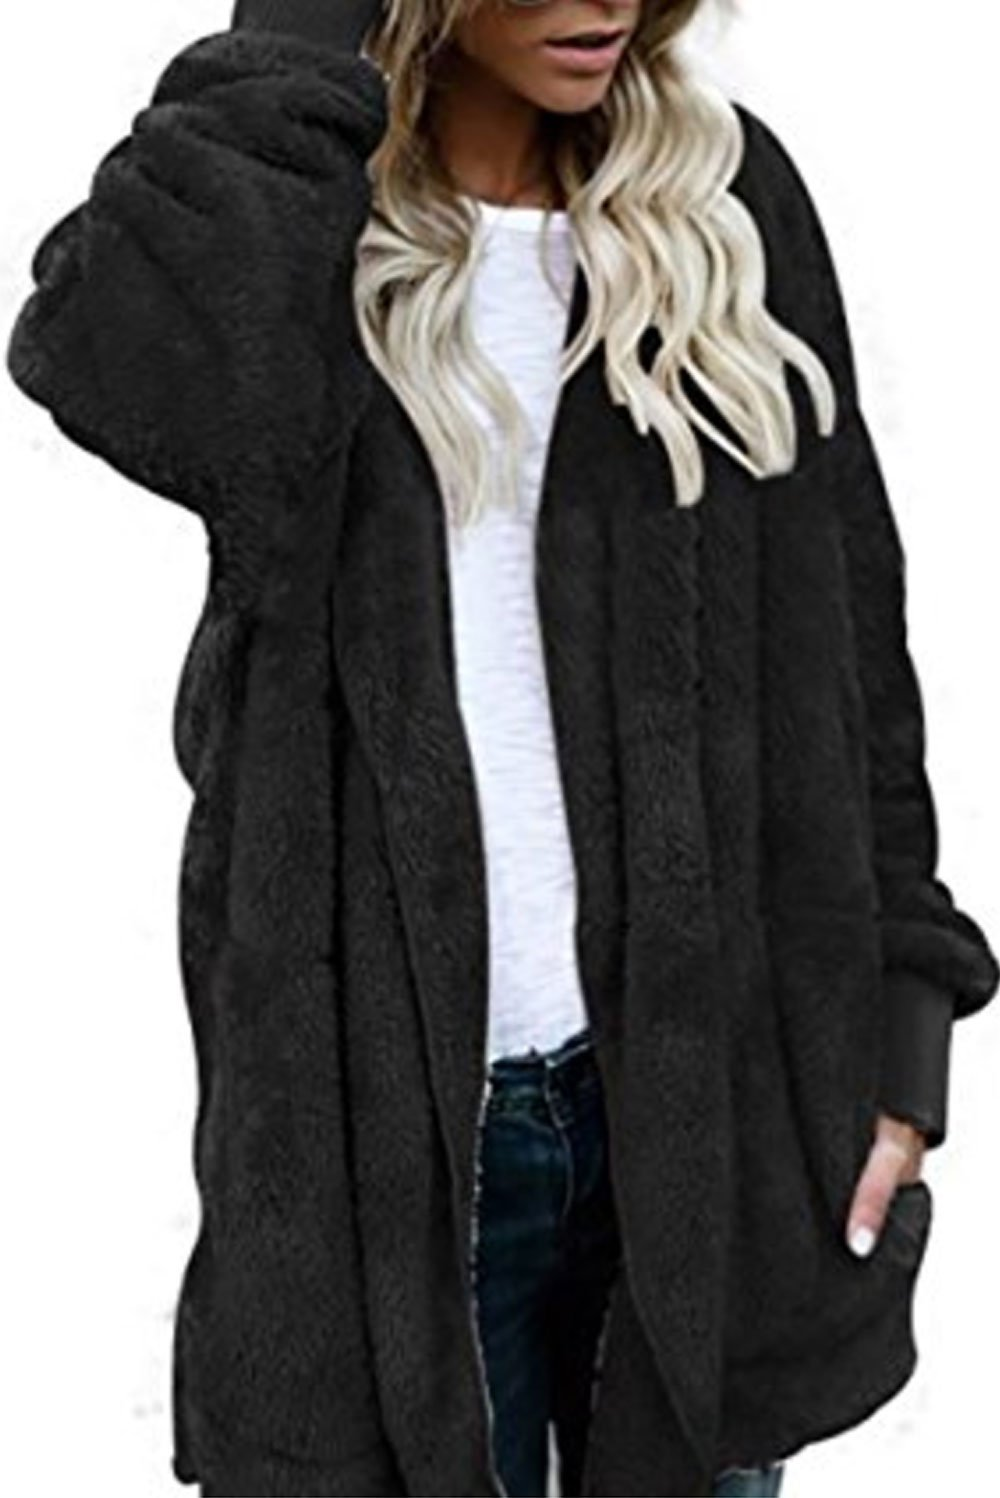 Women Fashion Fleece Sherpa Jacket Hooded Coat with Pocket Winter Warm Outwear Black by Fantasy Star (US 4-6)S